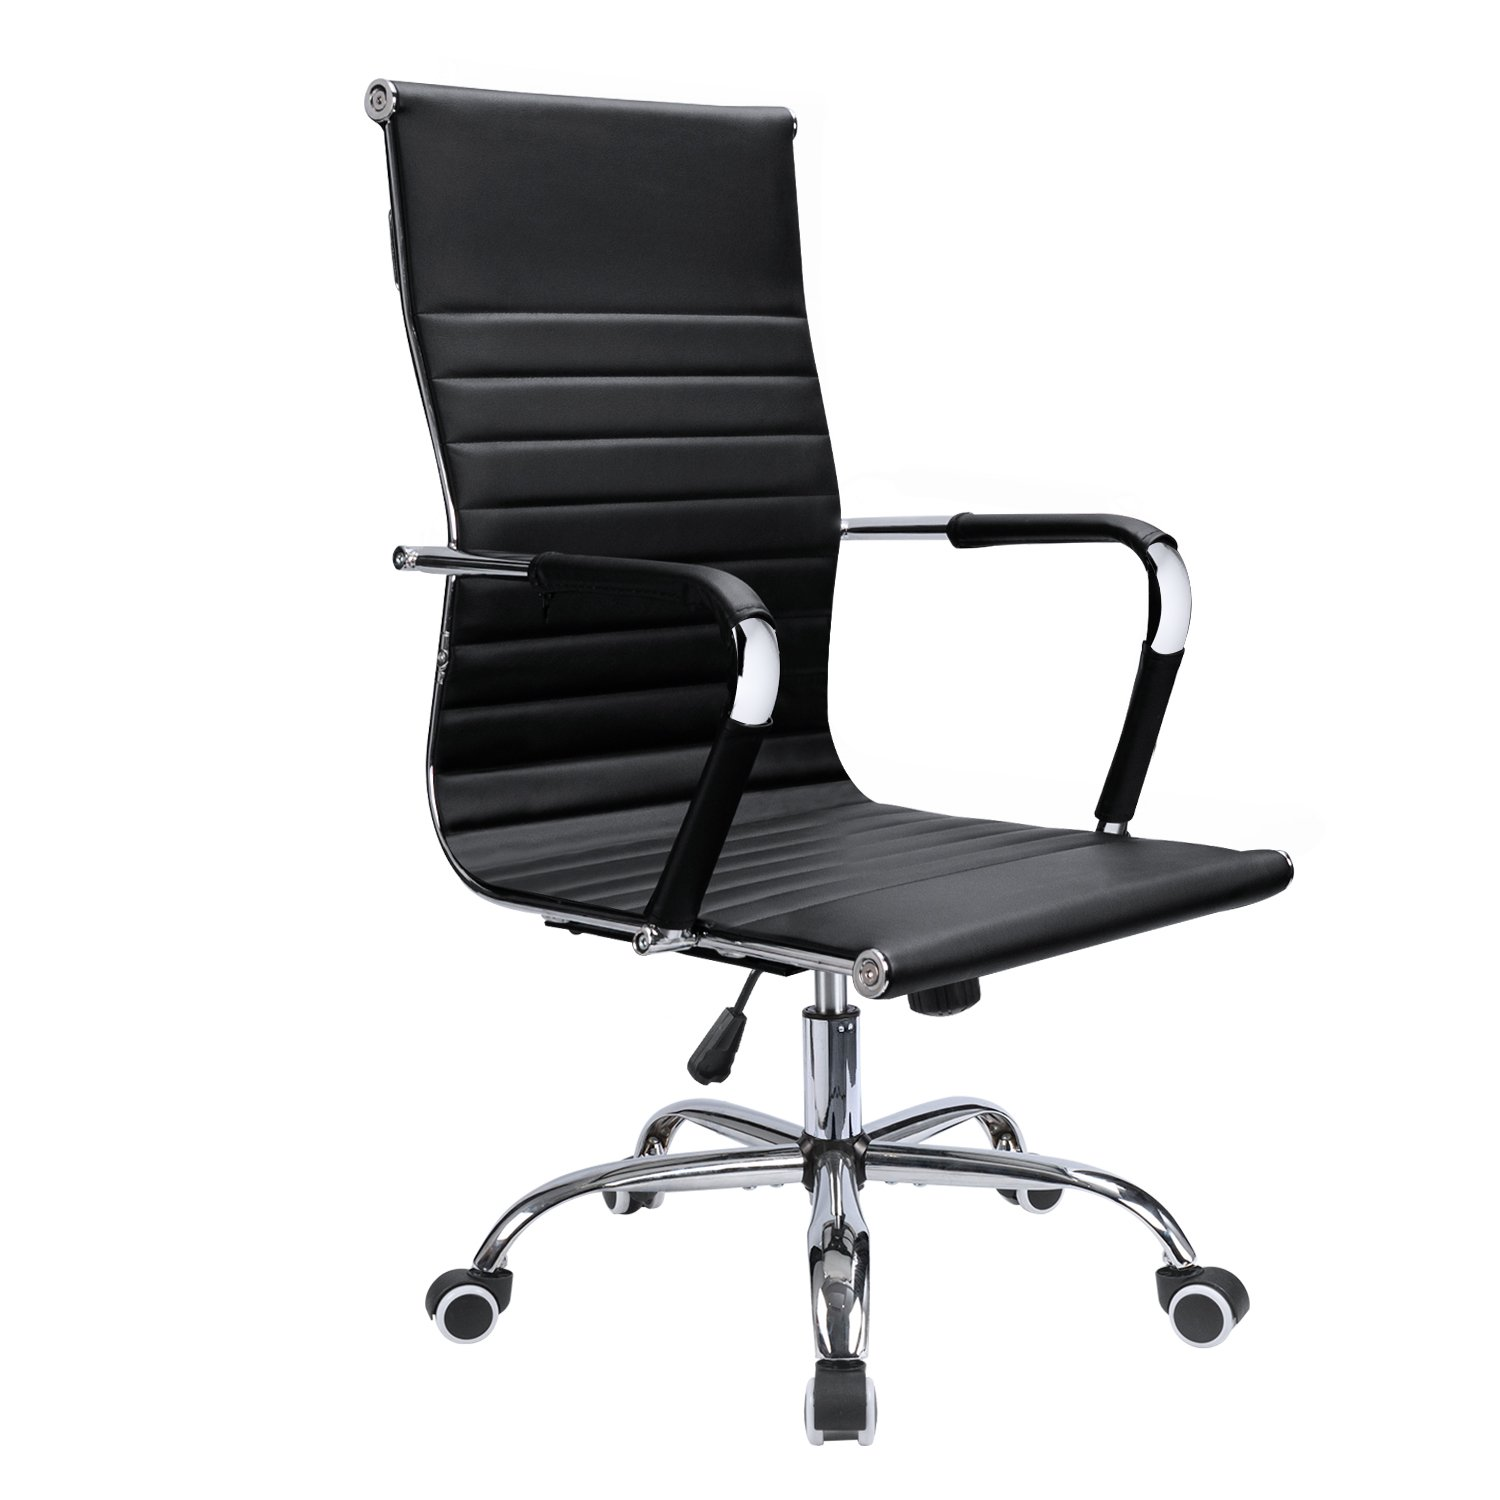 Devoko Ribbed Office Chair Mid Back Leather Height Adjustable Swivel Desk Chairs Ergonomic Executive Conference Task Chair with Arms (Black)